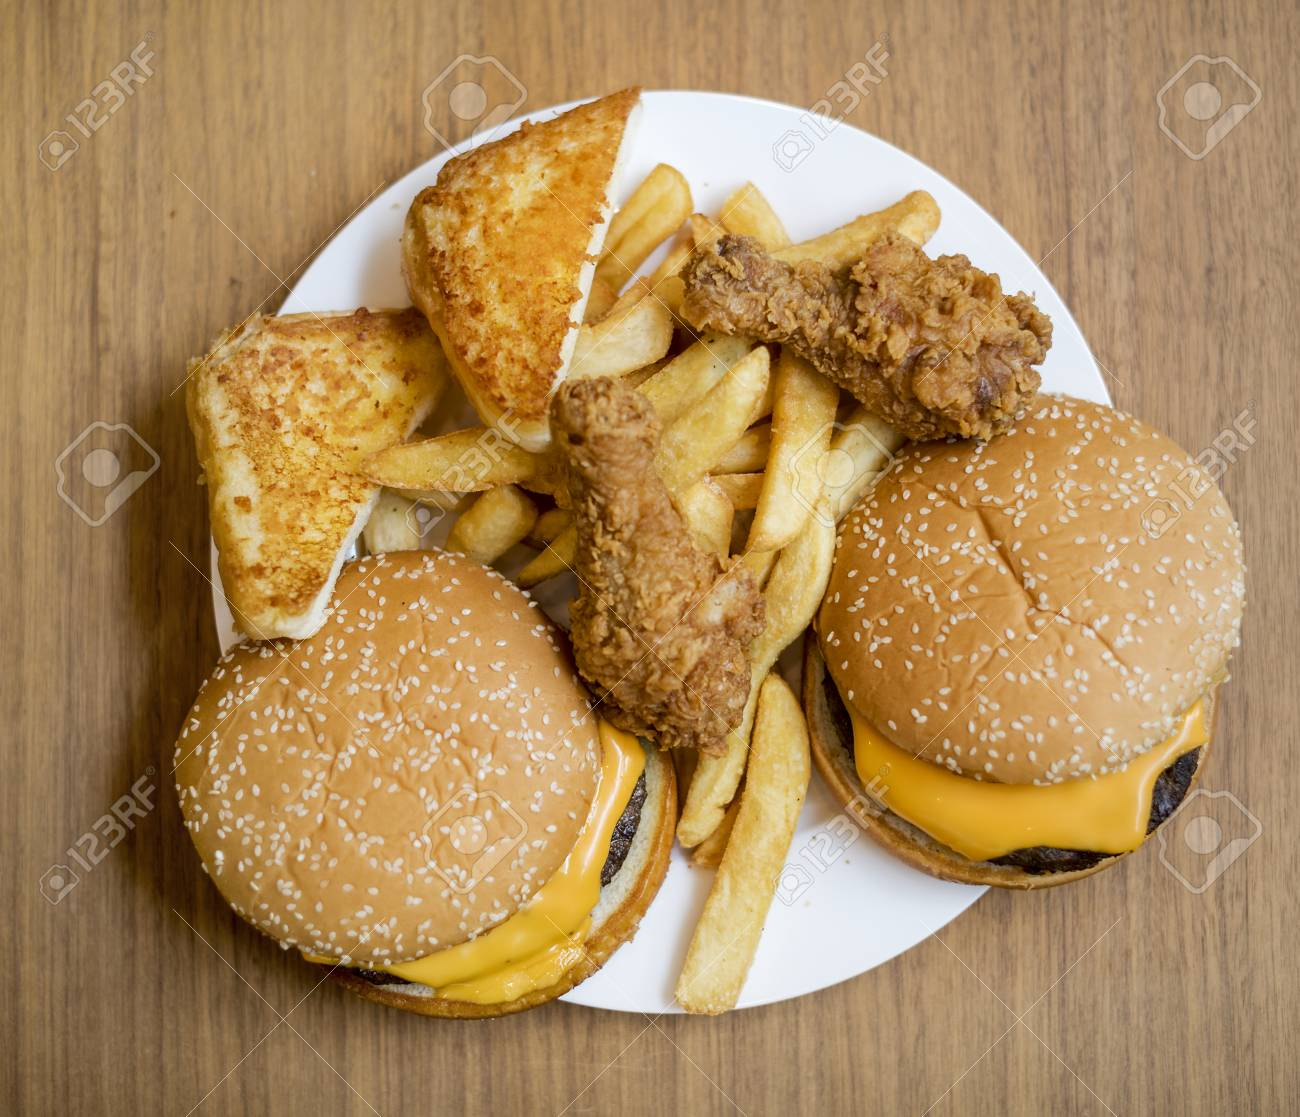 Fattening and unhealthy fast food - 109999064